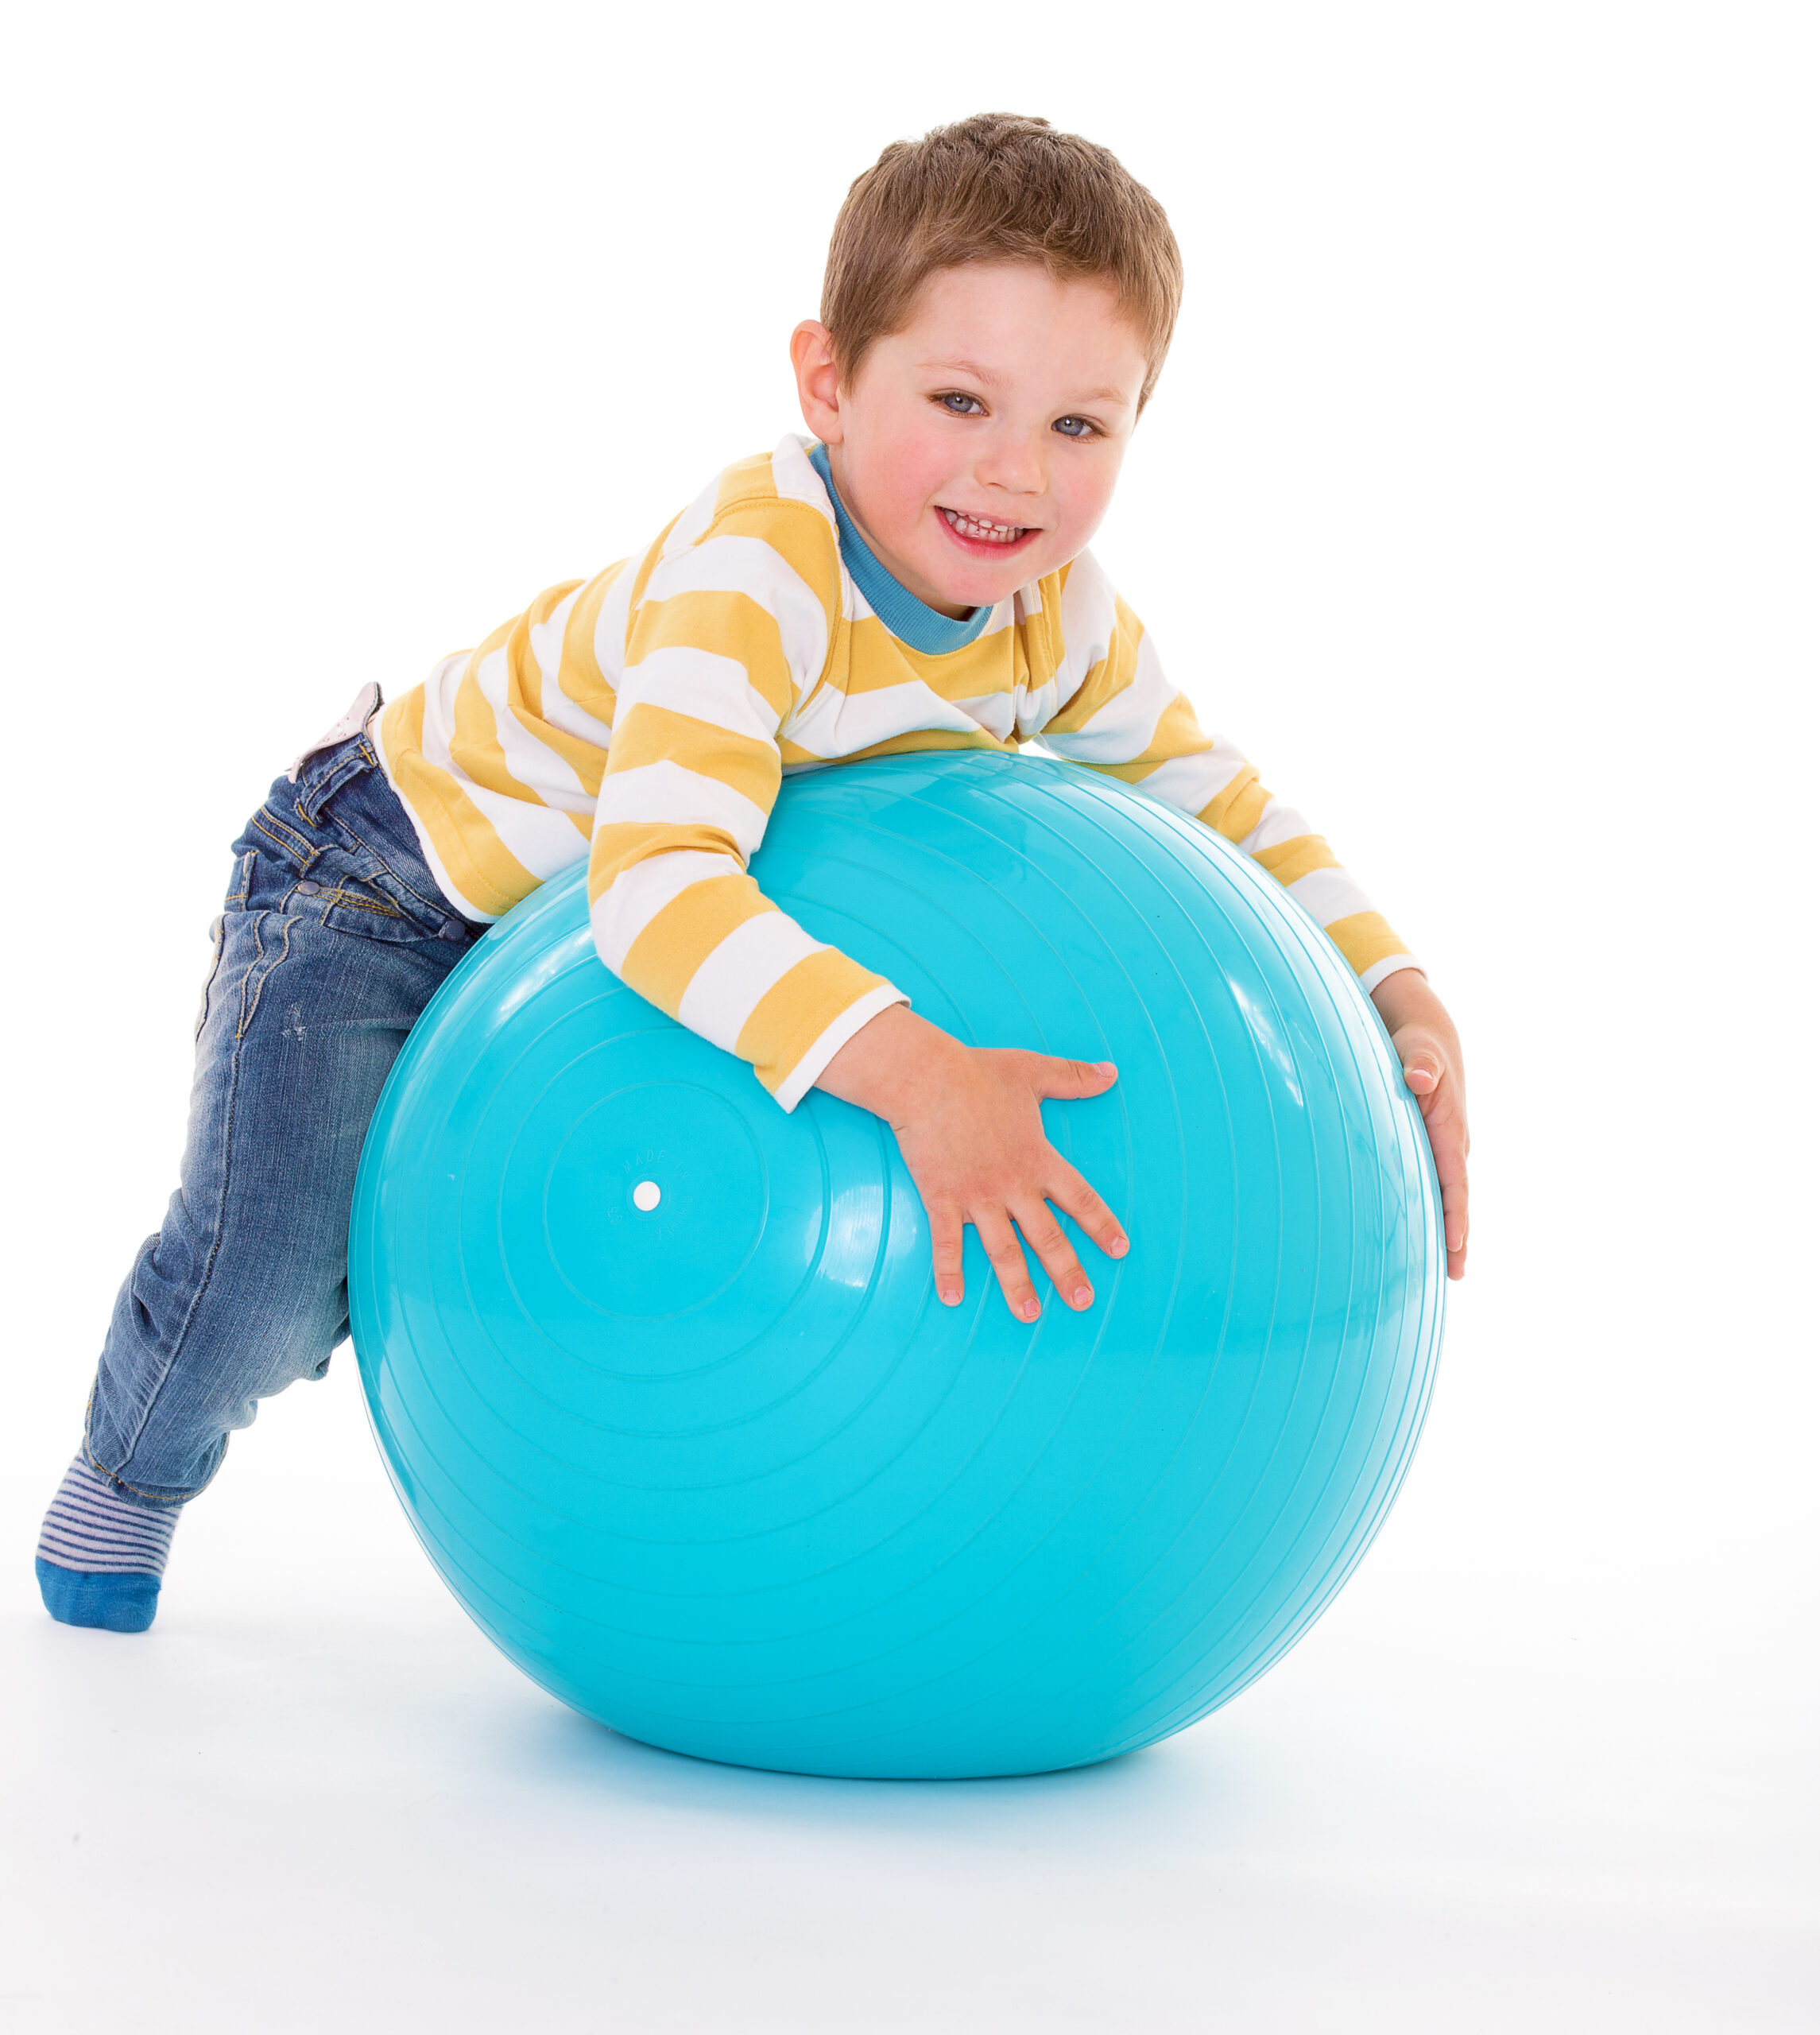 Little,Boy,With,A,Big,Ball.isolated,On,White,Background.